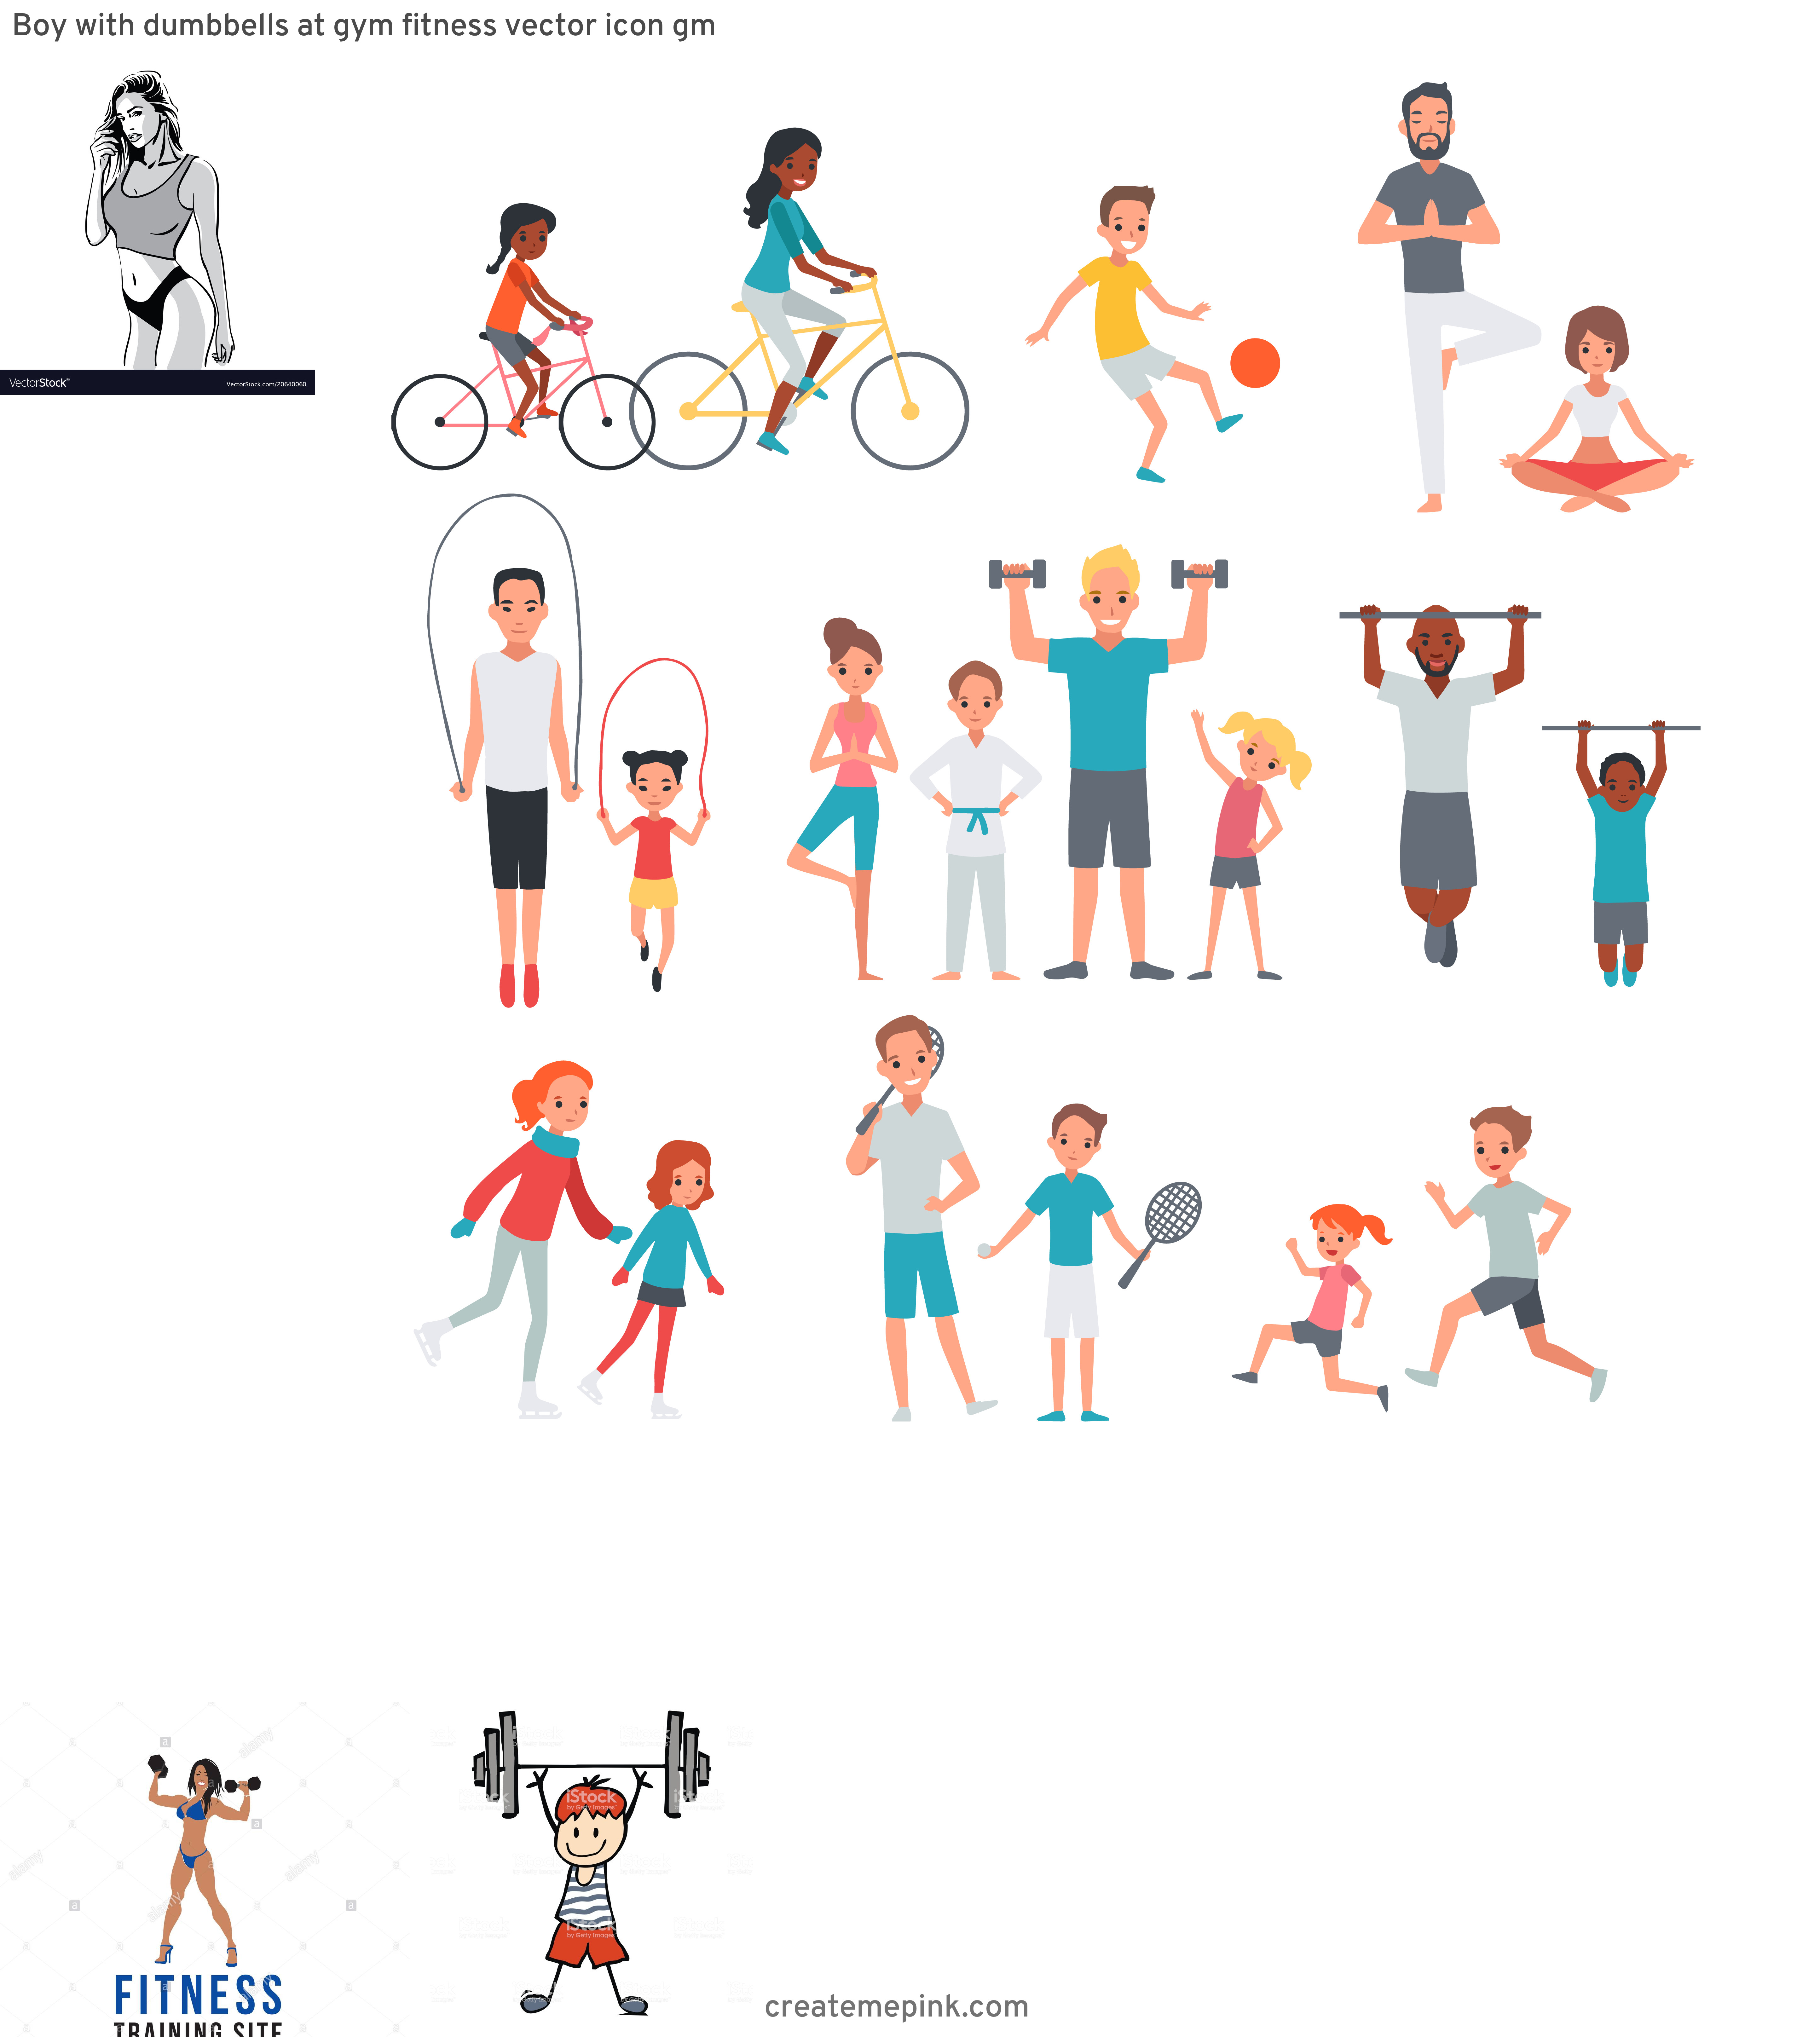 Fitness Vector Art: Boy With Dumbbells At Gym Fitness Vector Icon Gm